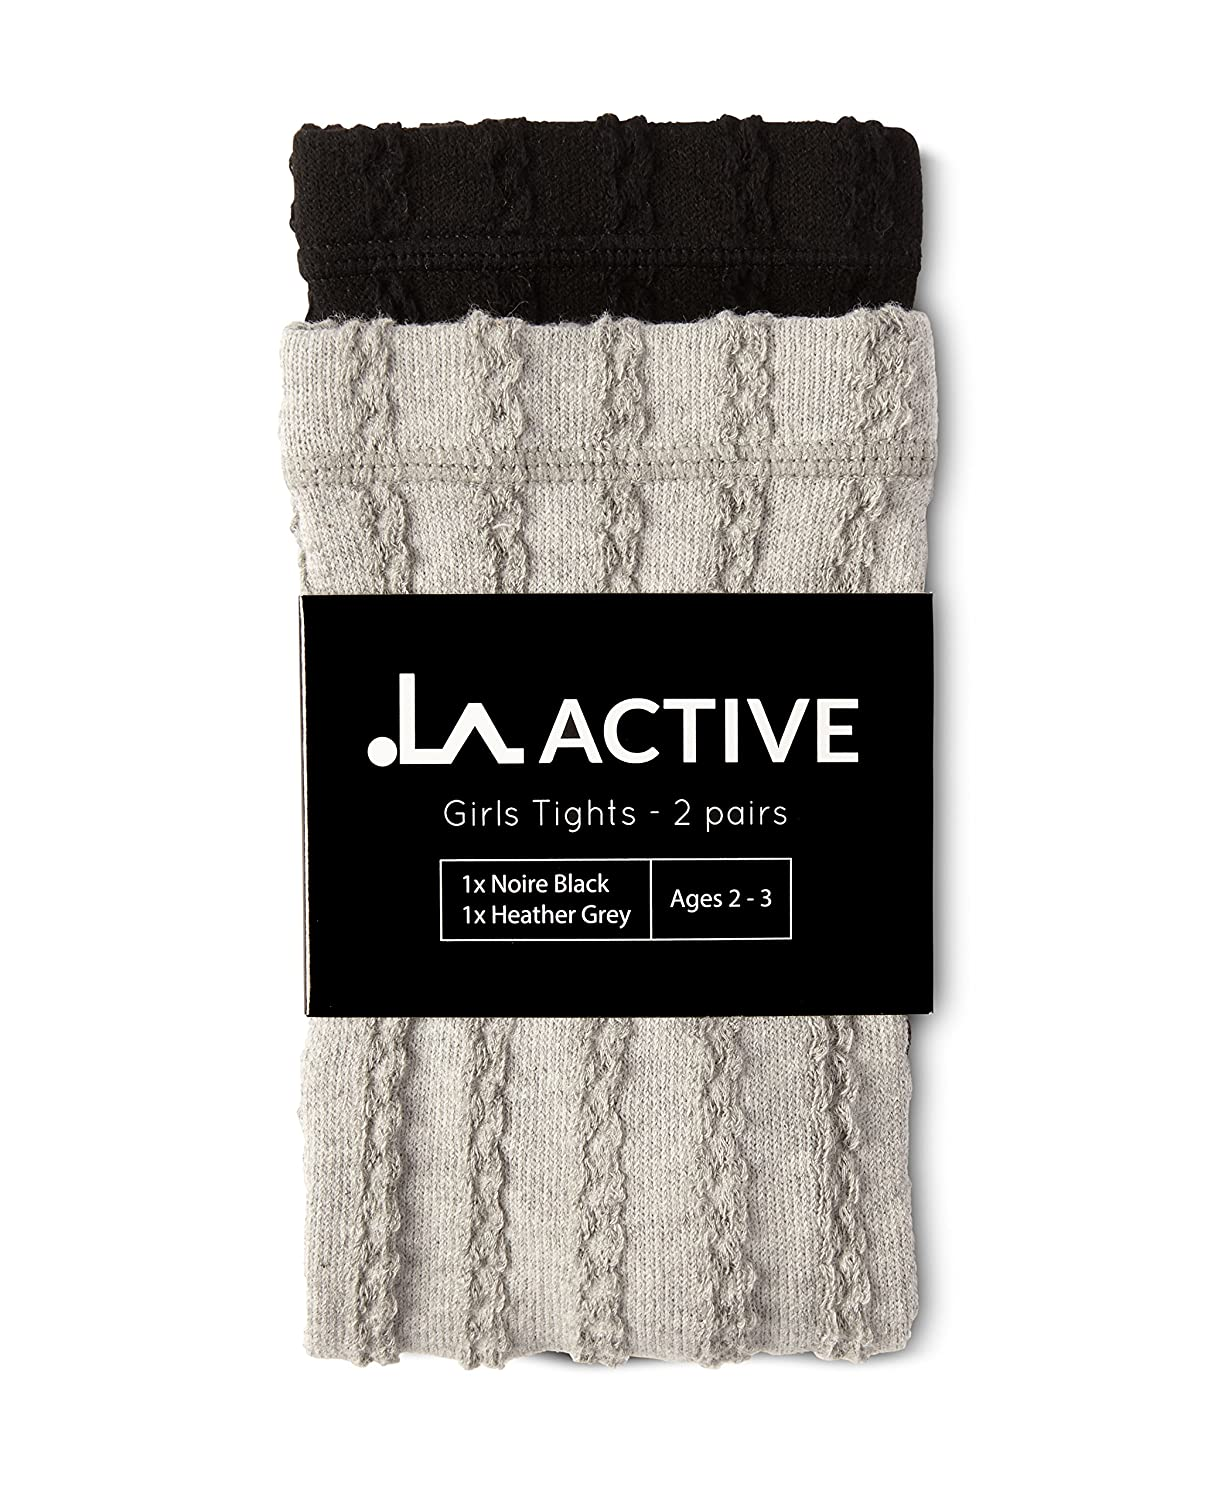 LA Active Baby Girls Tights 2 Pairs Baby Toddler Infant Newborn Kids Non Skid//Slip Grip Cotton Cable Knit 2T 3T 4T 5T